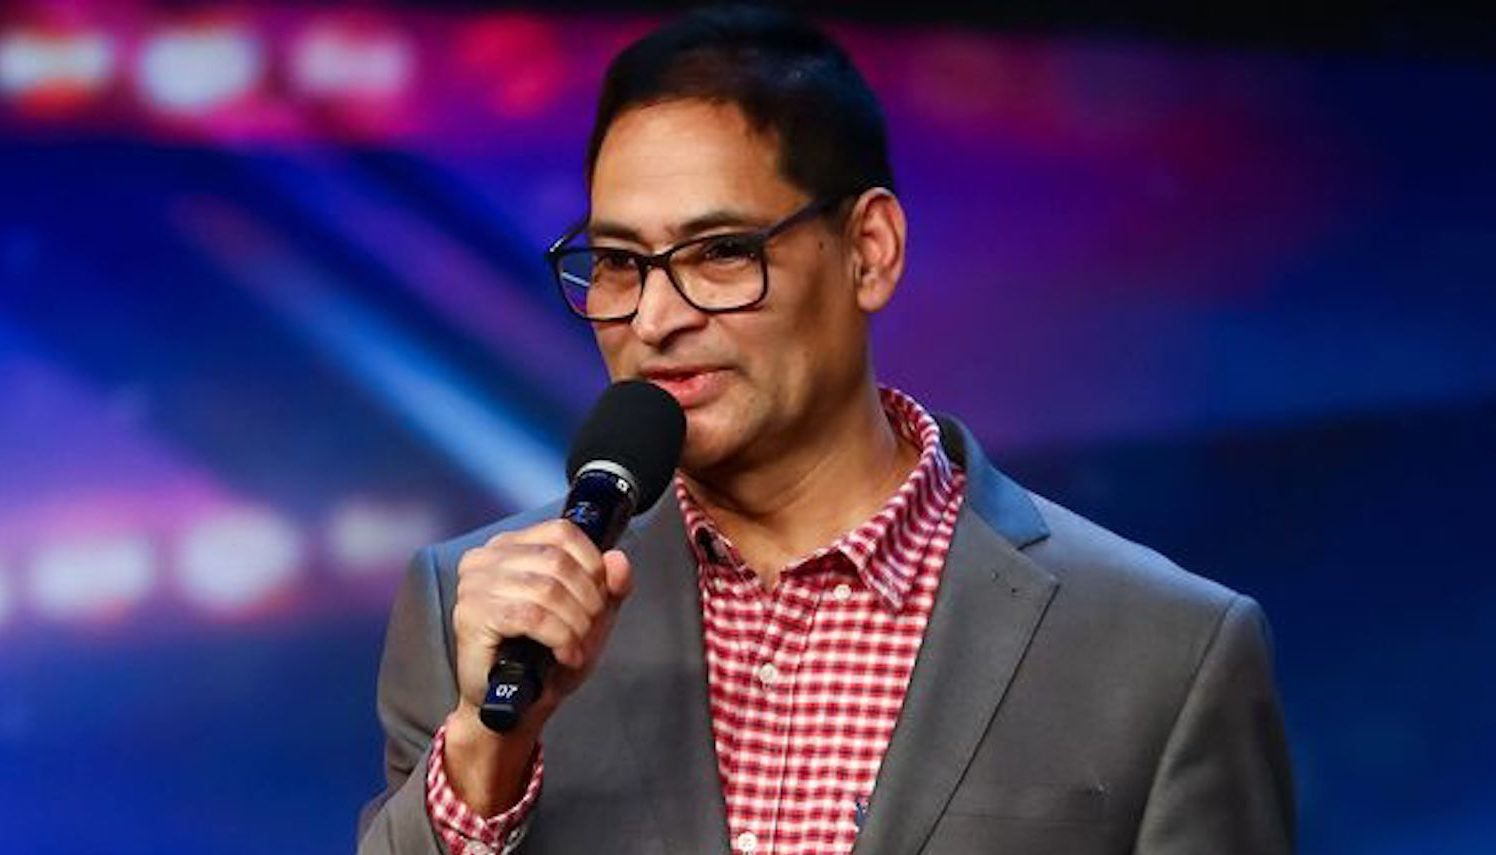 BGT star Bhim Niroula is a secret YouTube and reality star – listen to Sunday Morning Love You online NOW